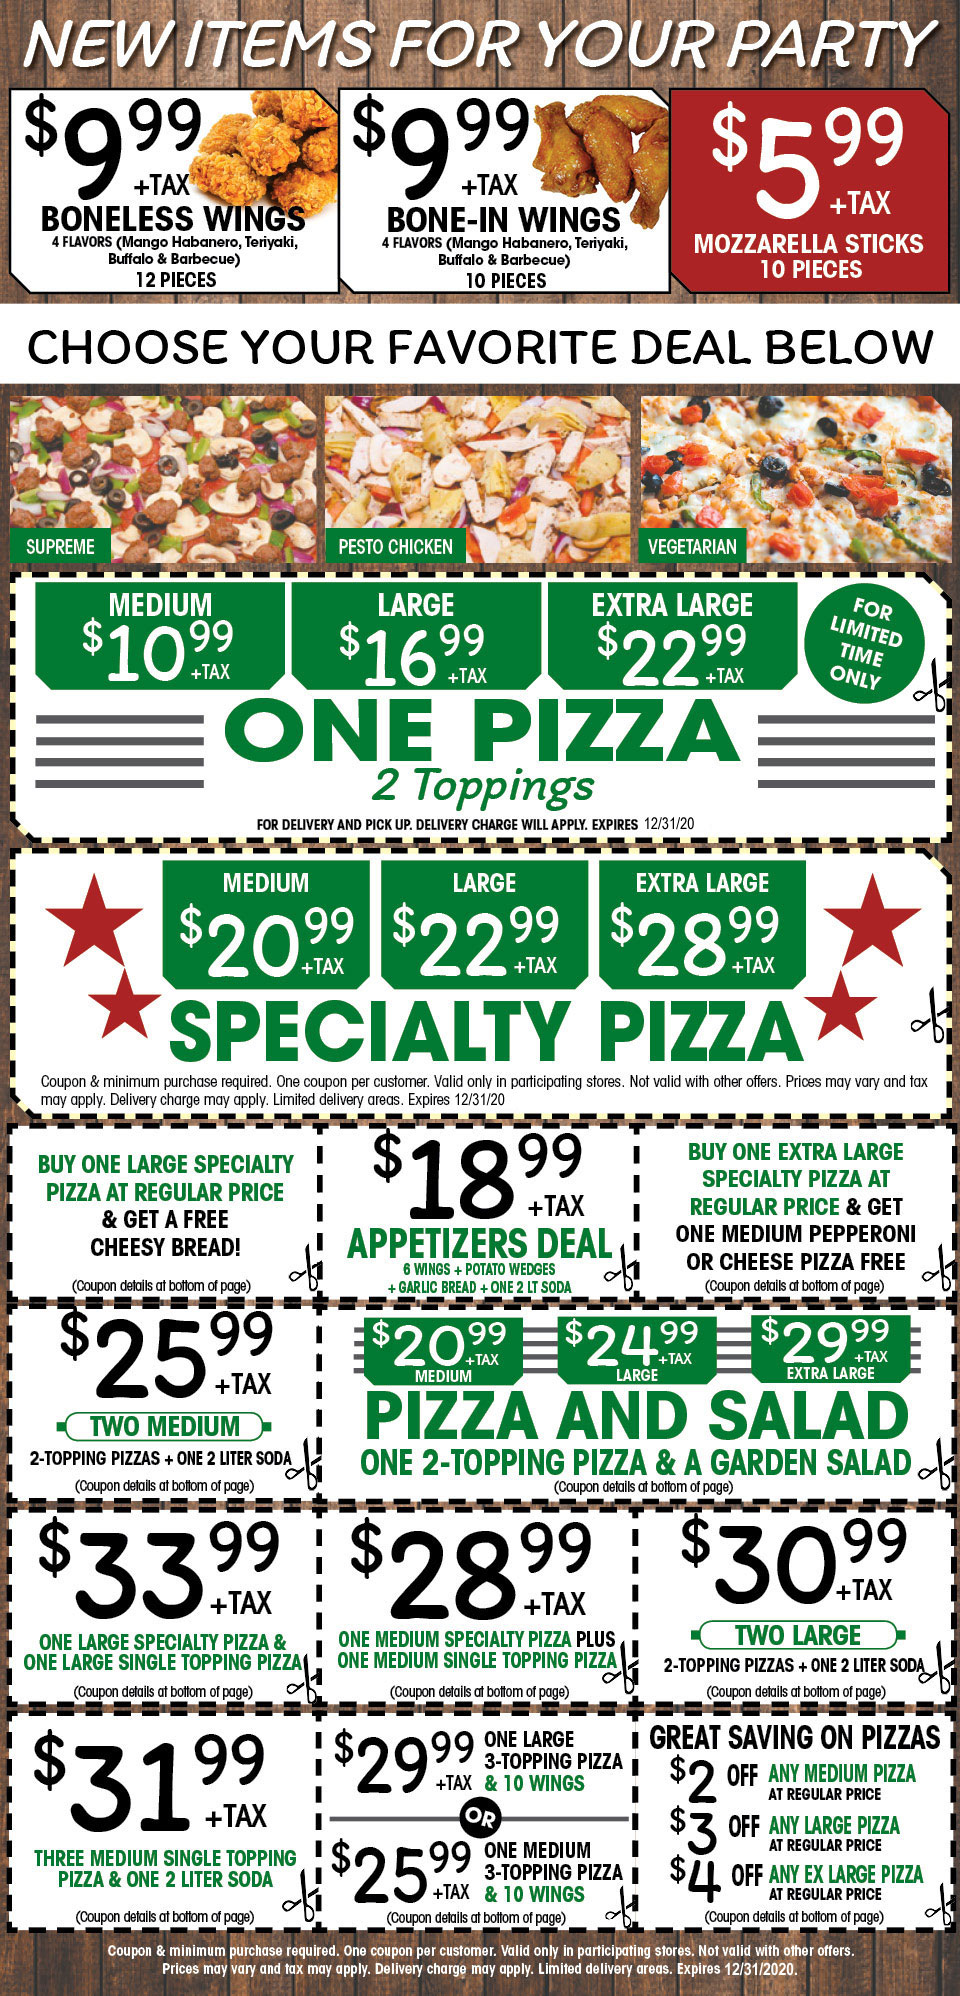 Via Mia Pizza Coupons Expiring Dec. 31, 2020